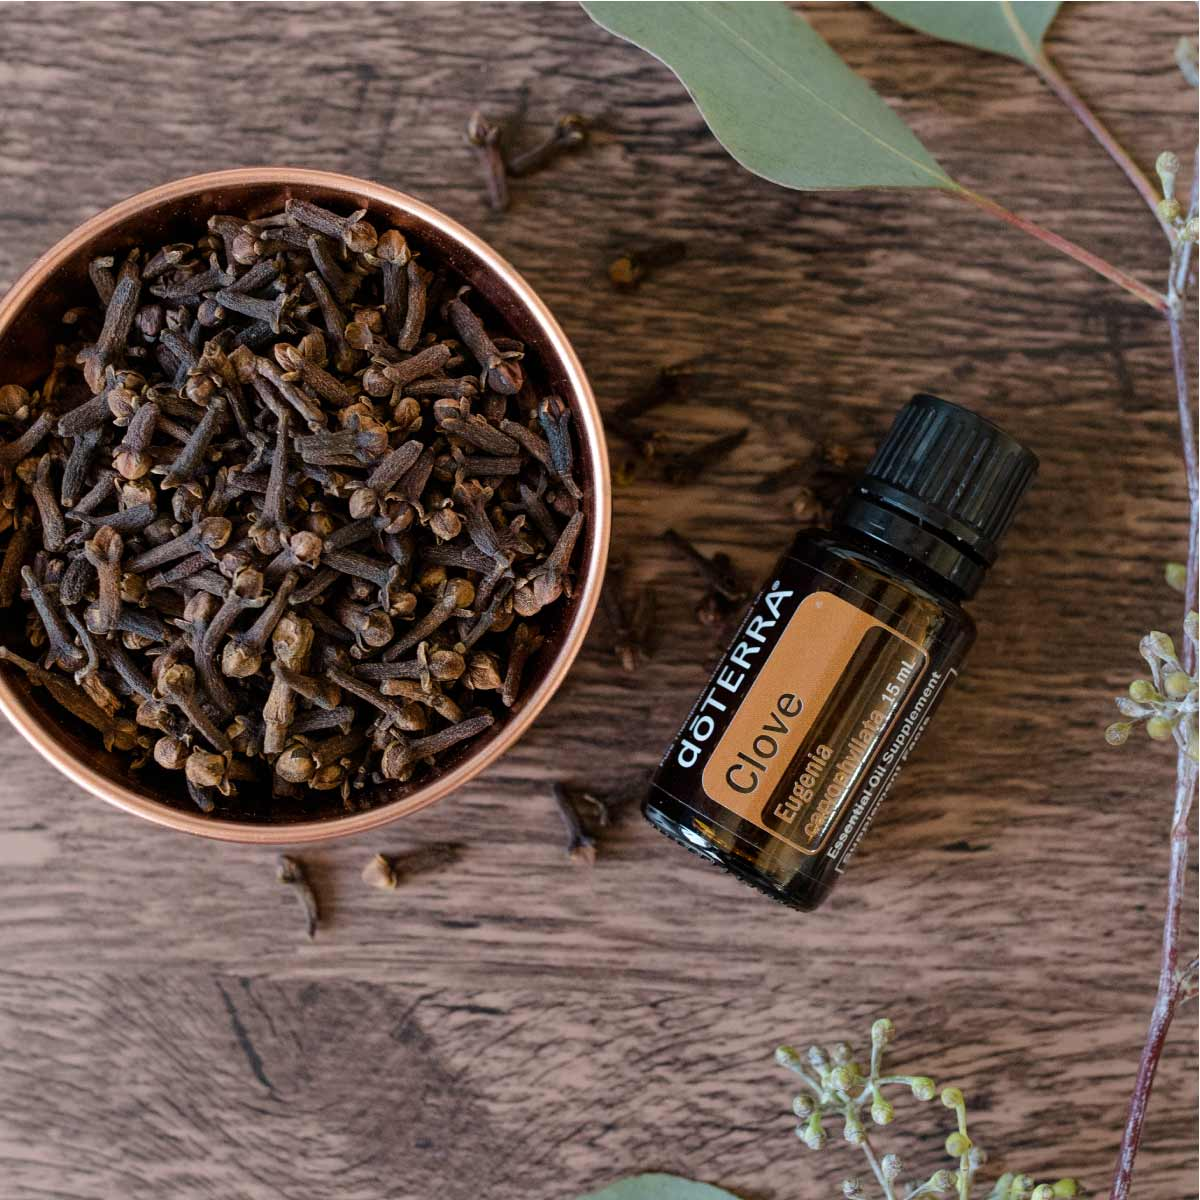 doTERRA Clove oil bottle with a bowl of fresh clove. One of the best benefits of Clove essential oil is that it can be used to help clean the gums and teeth.